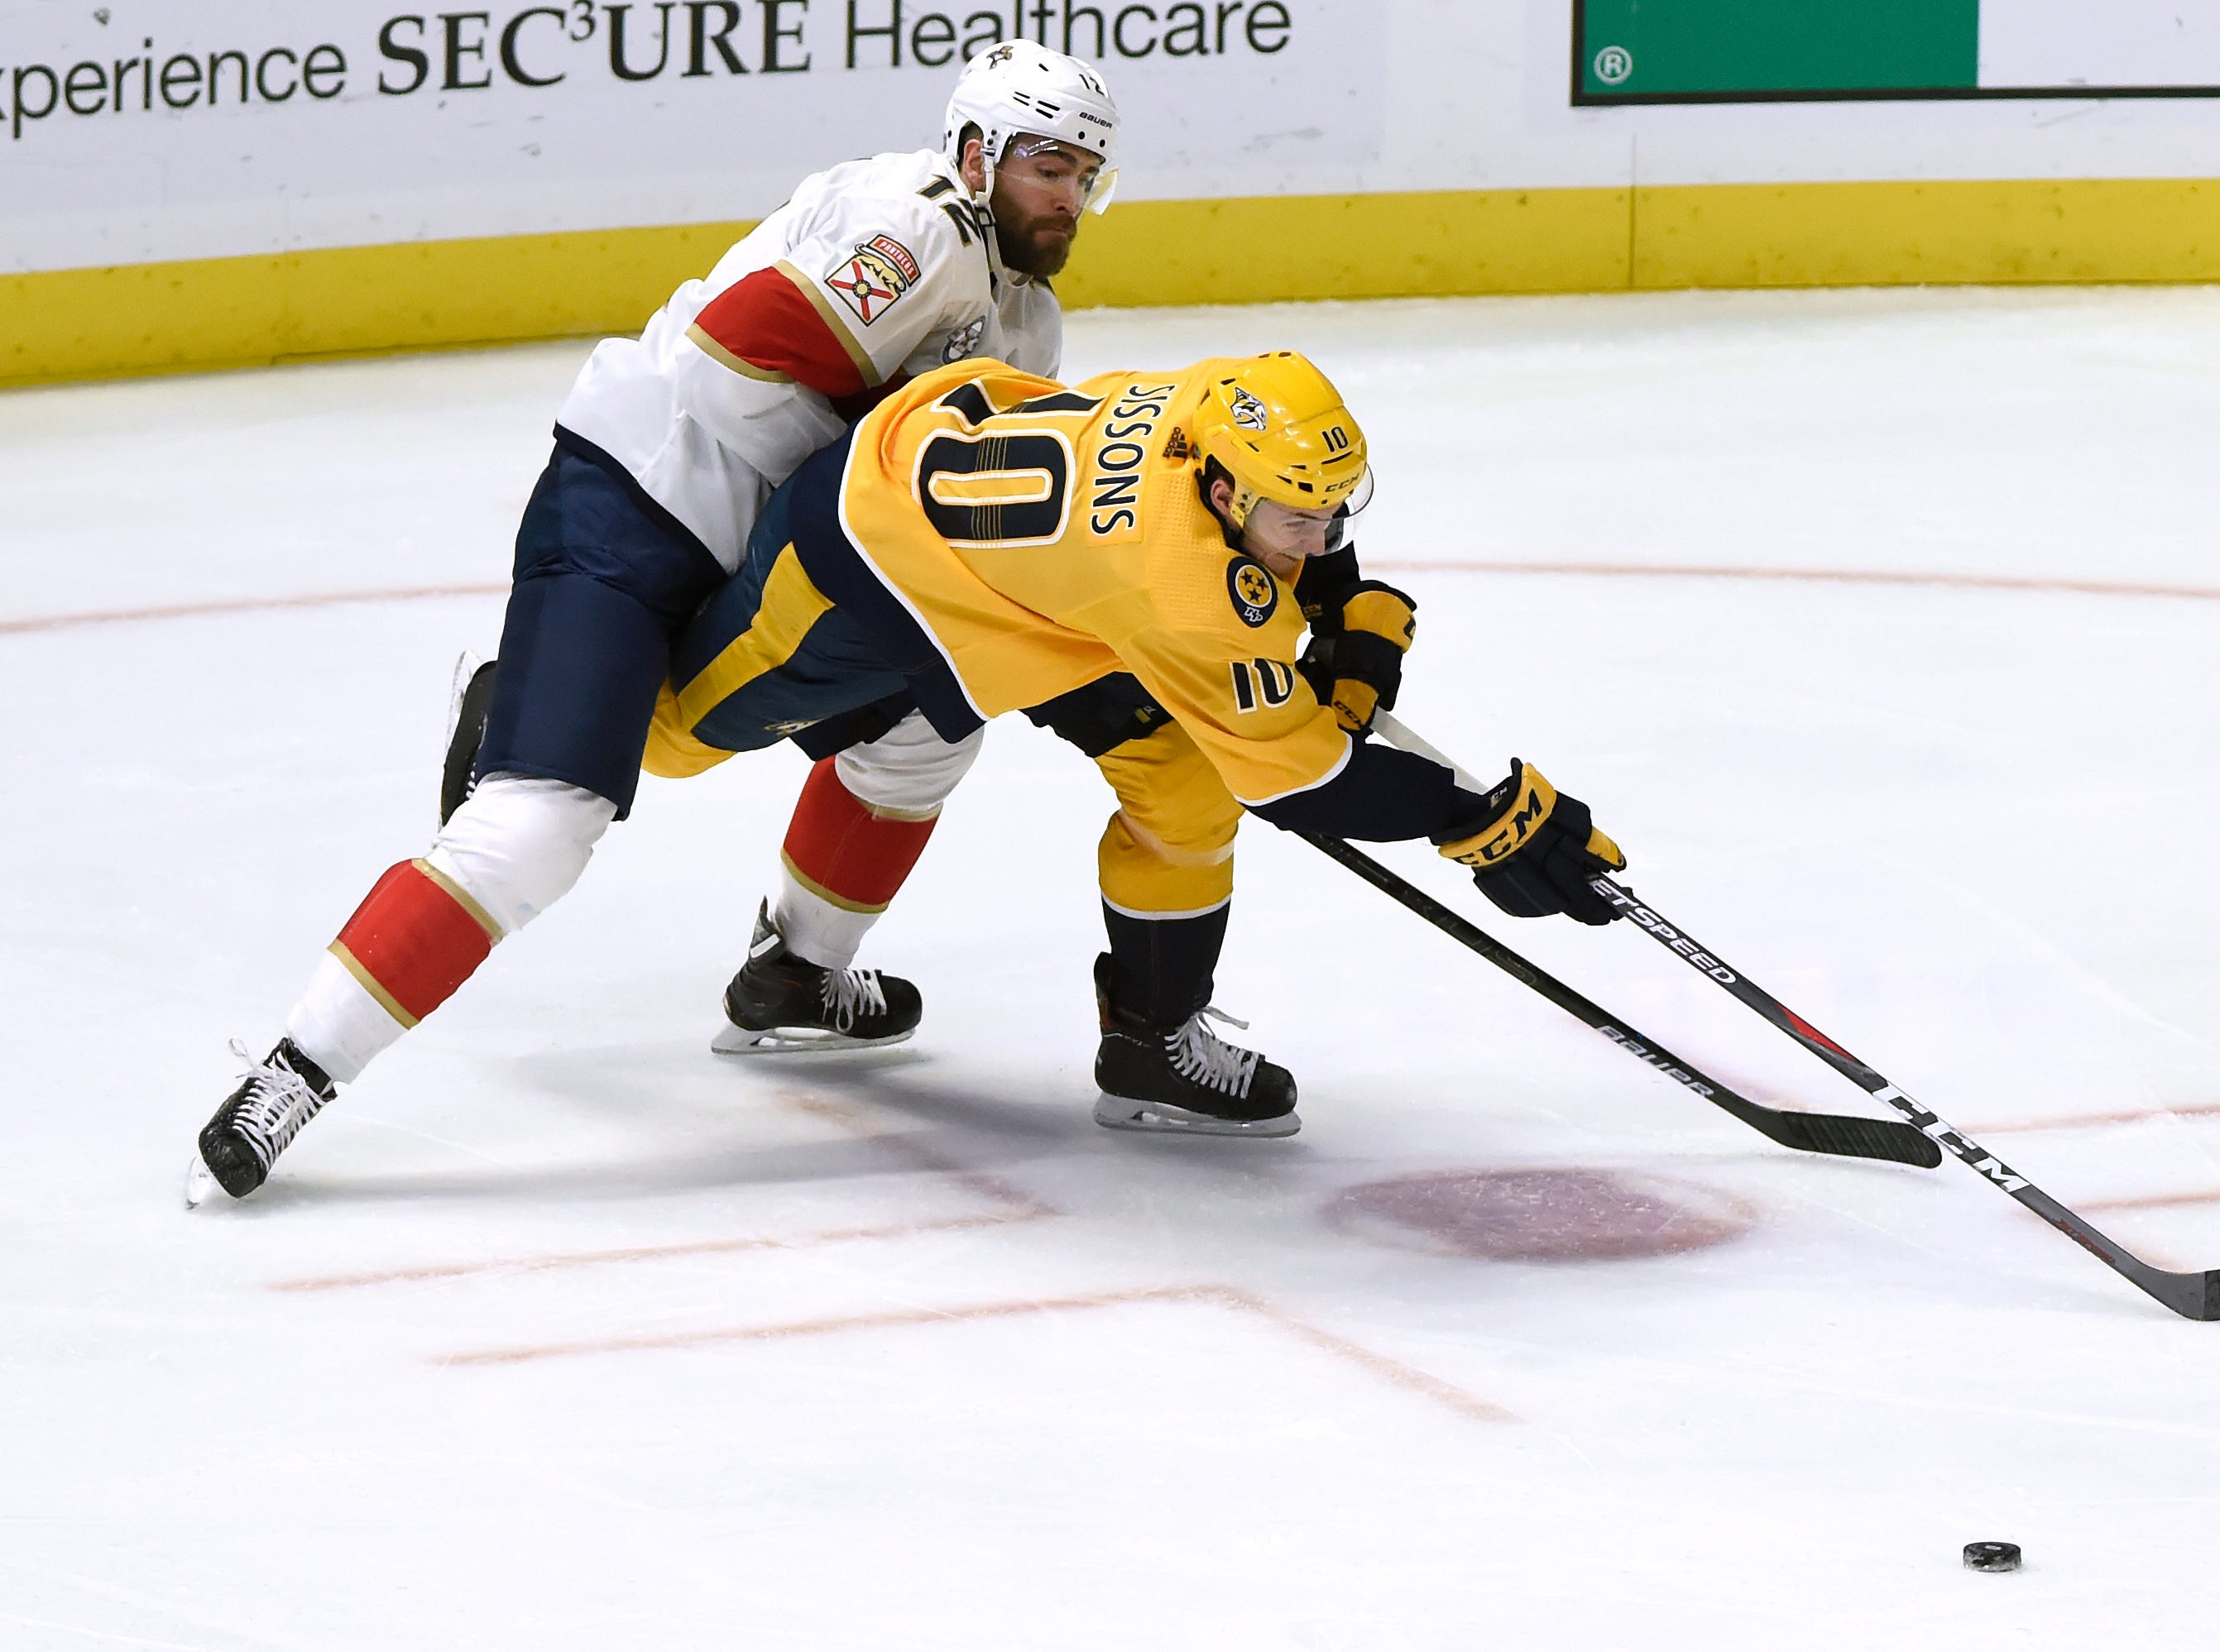 Nashville Predators center Colton Sissons (10) and Florida Panthers defenseman Ian McCoshen (12) chase the puck during the first period of an NHL hockey game Saturday, Jan. 19, 2019, in Nashville, Tenn.